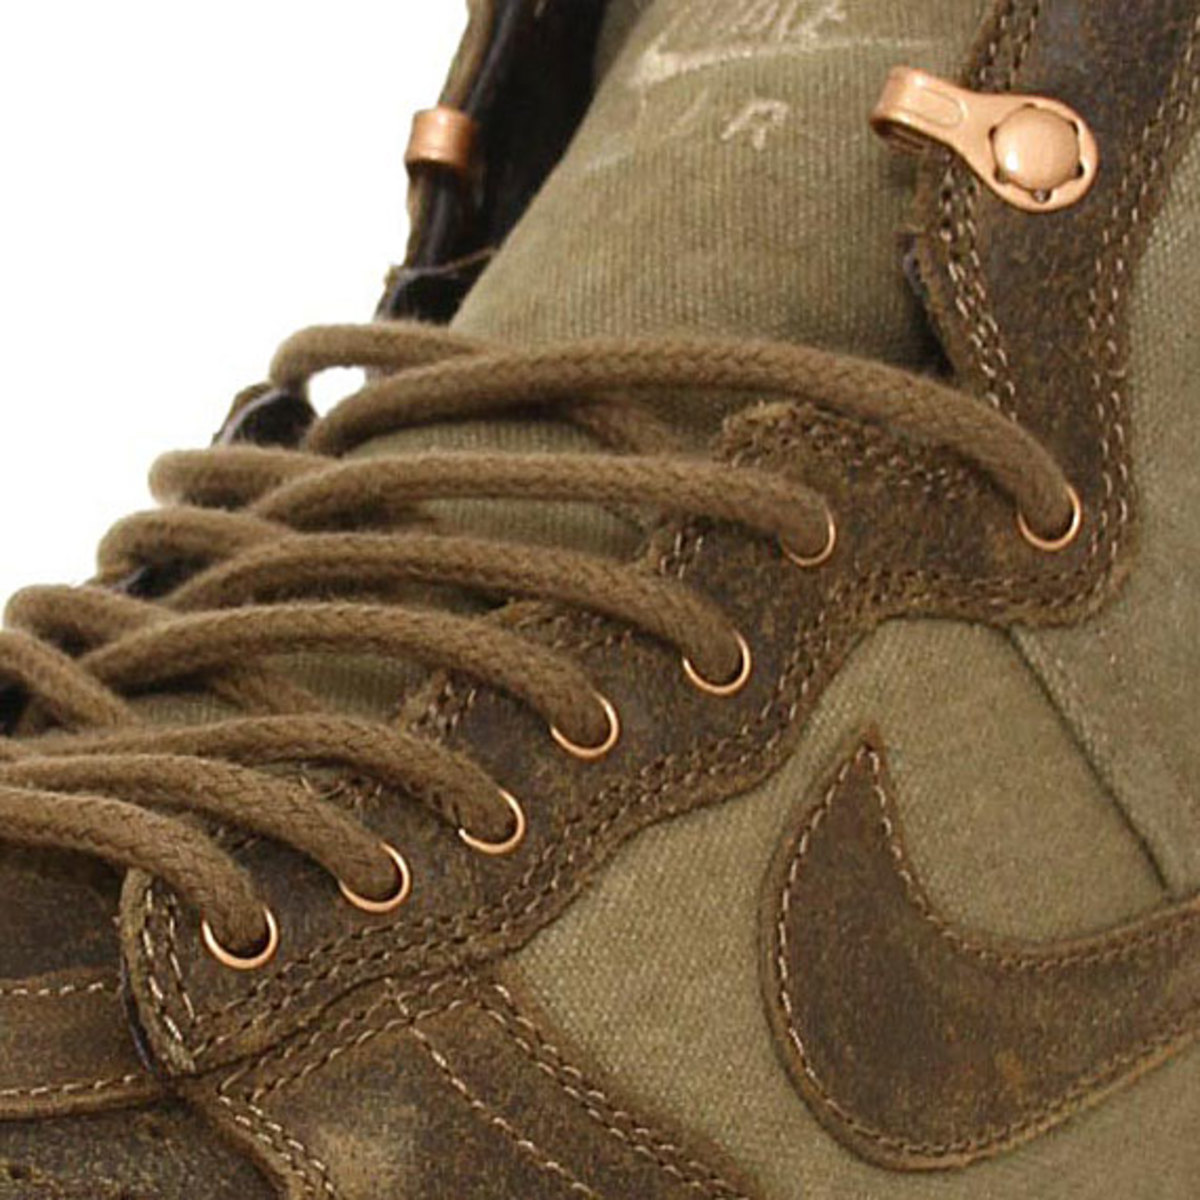 nike-air-force-1-hi-dcn-military-boot-raw-umber-06